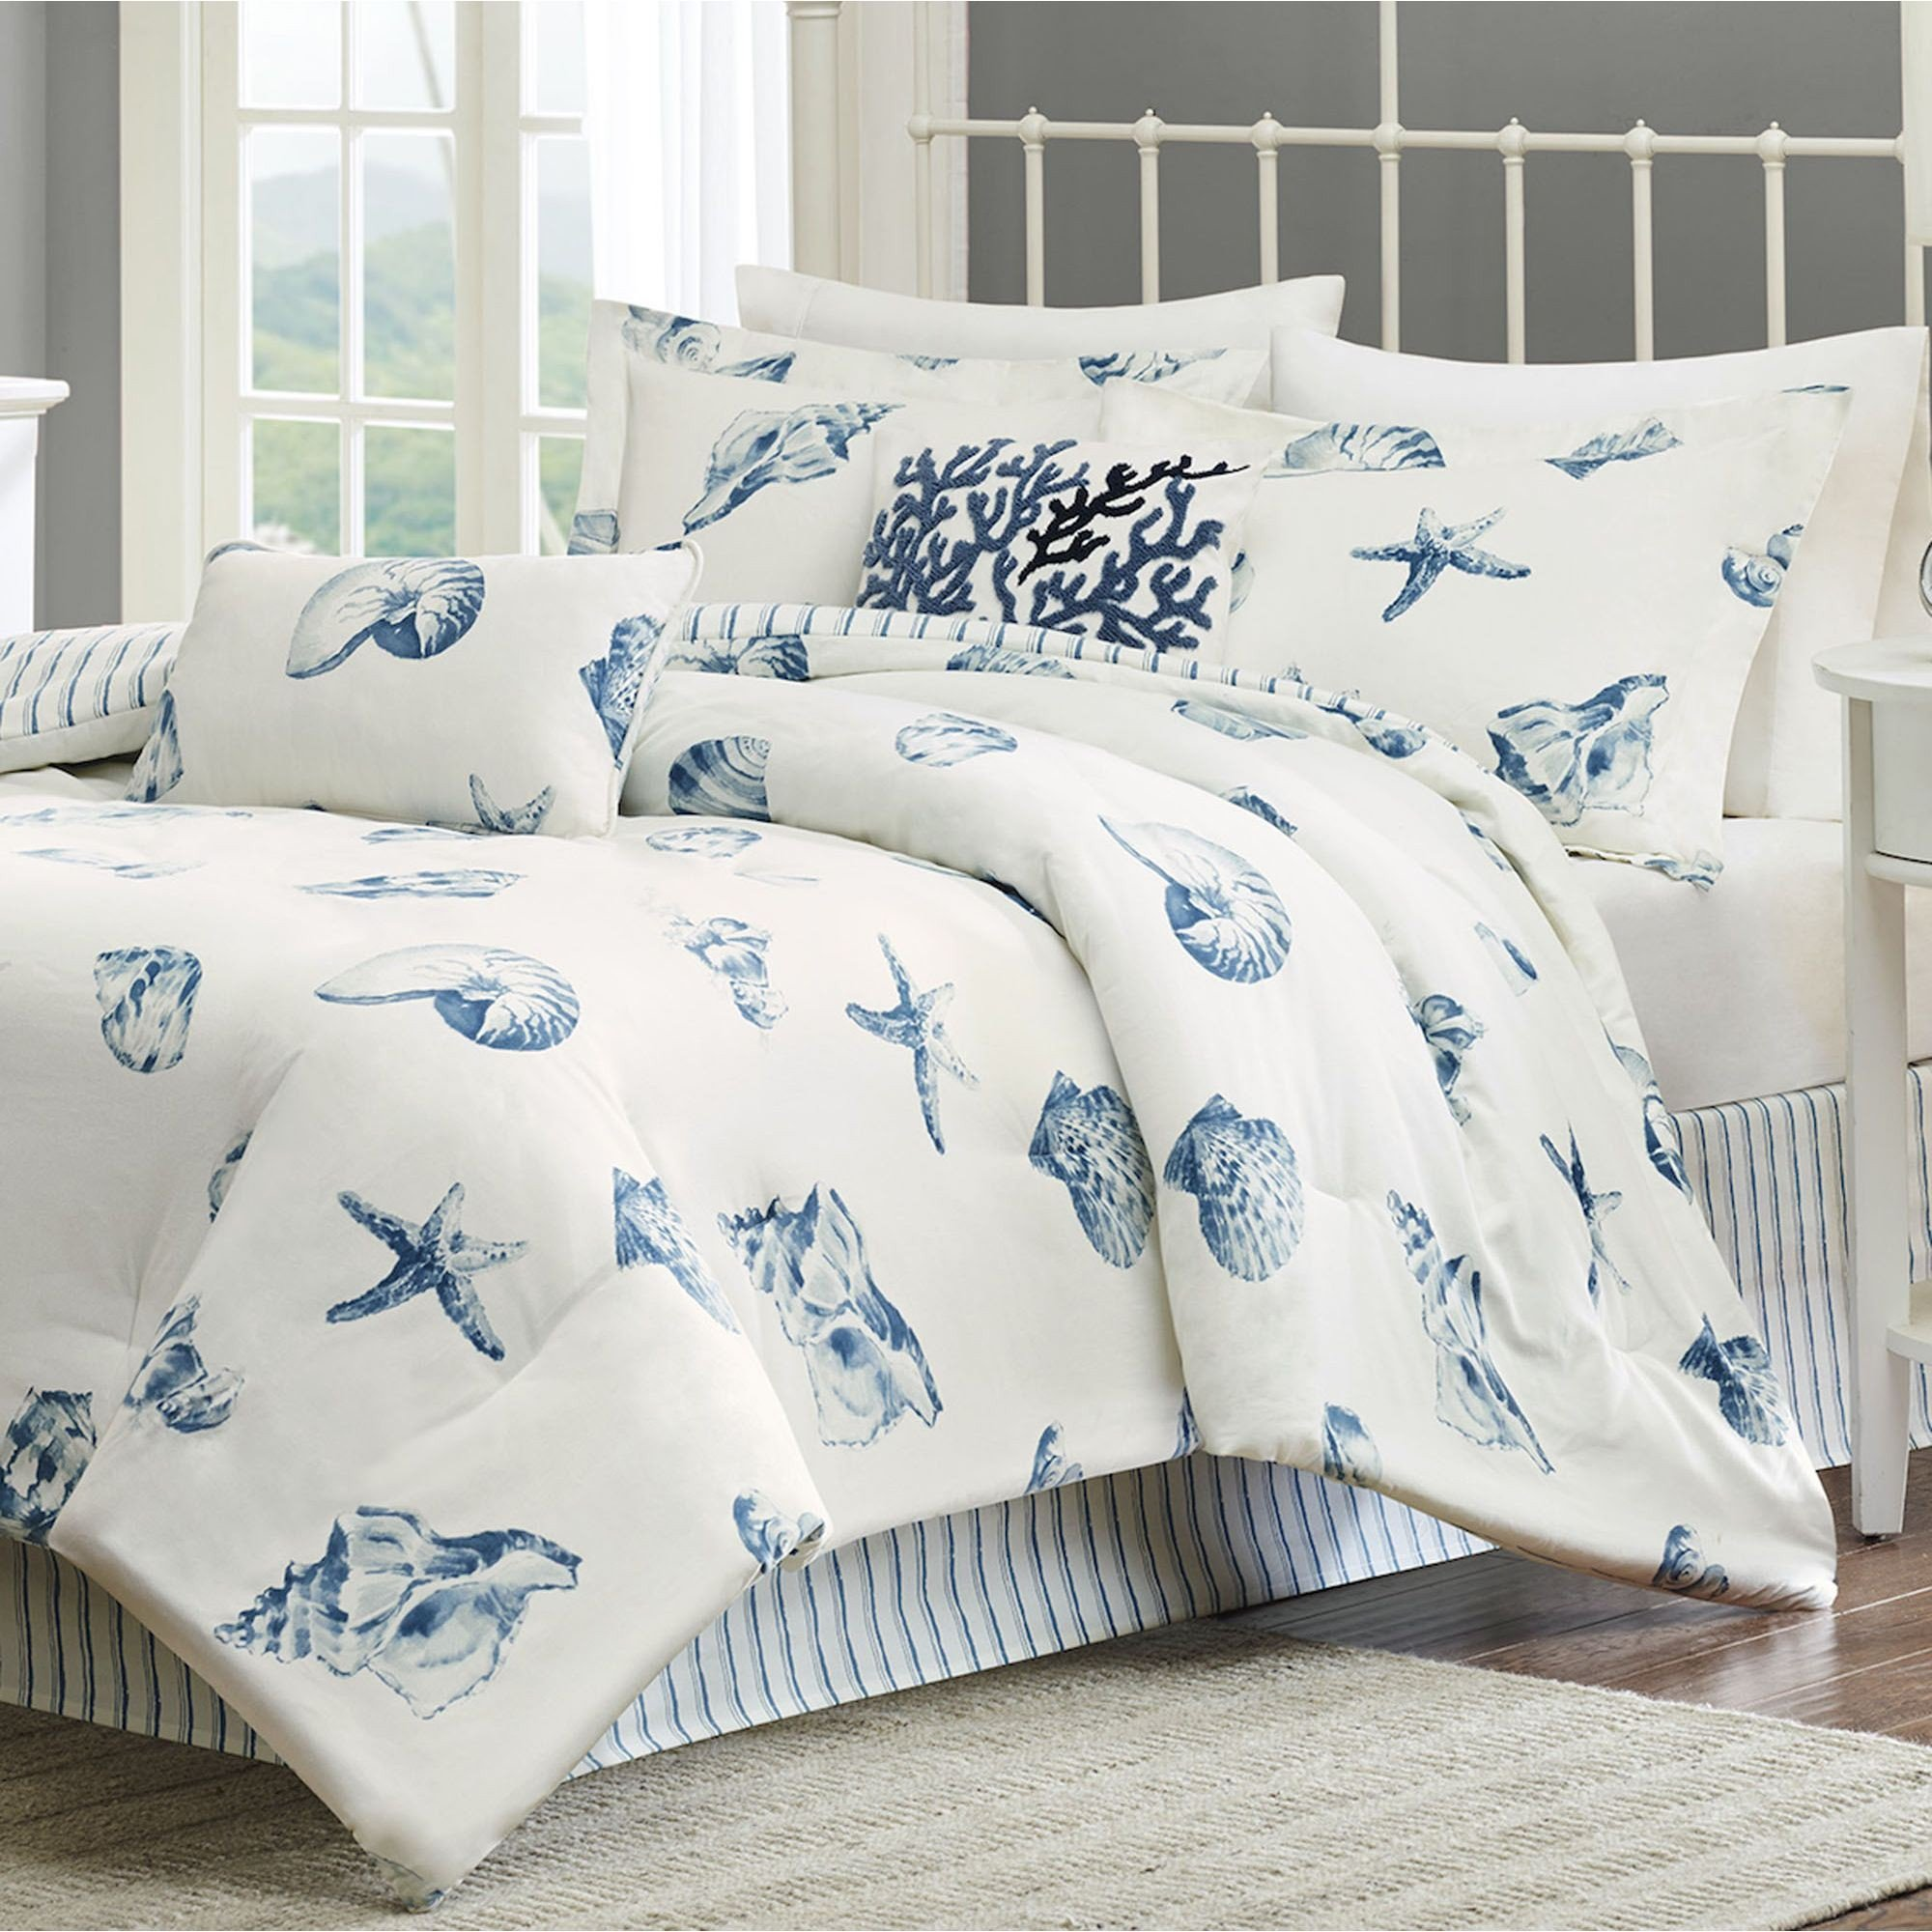 Beach themed Bedroom Accessories Elegant Breezy atmosphere In Bedroom with 3 Coastal Bedding